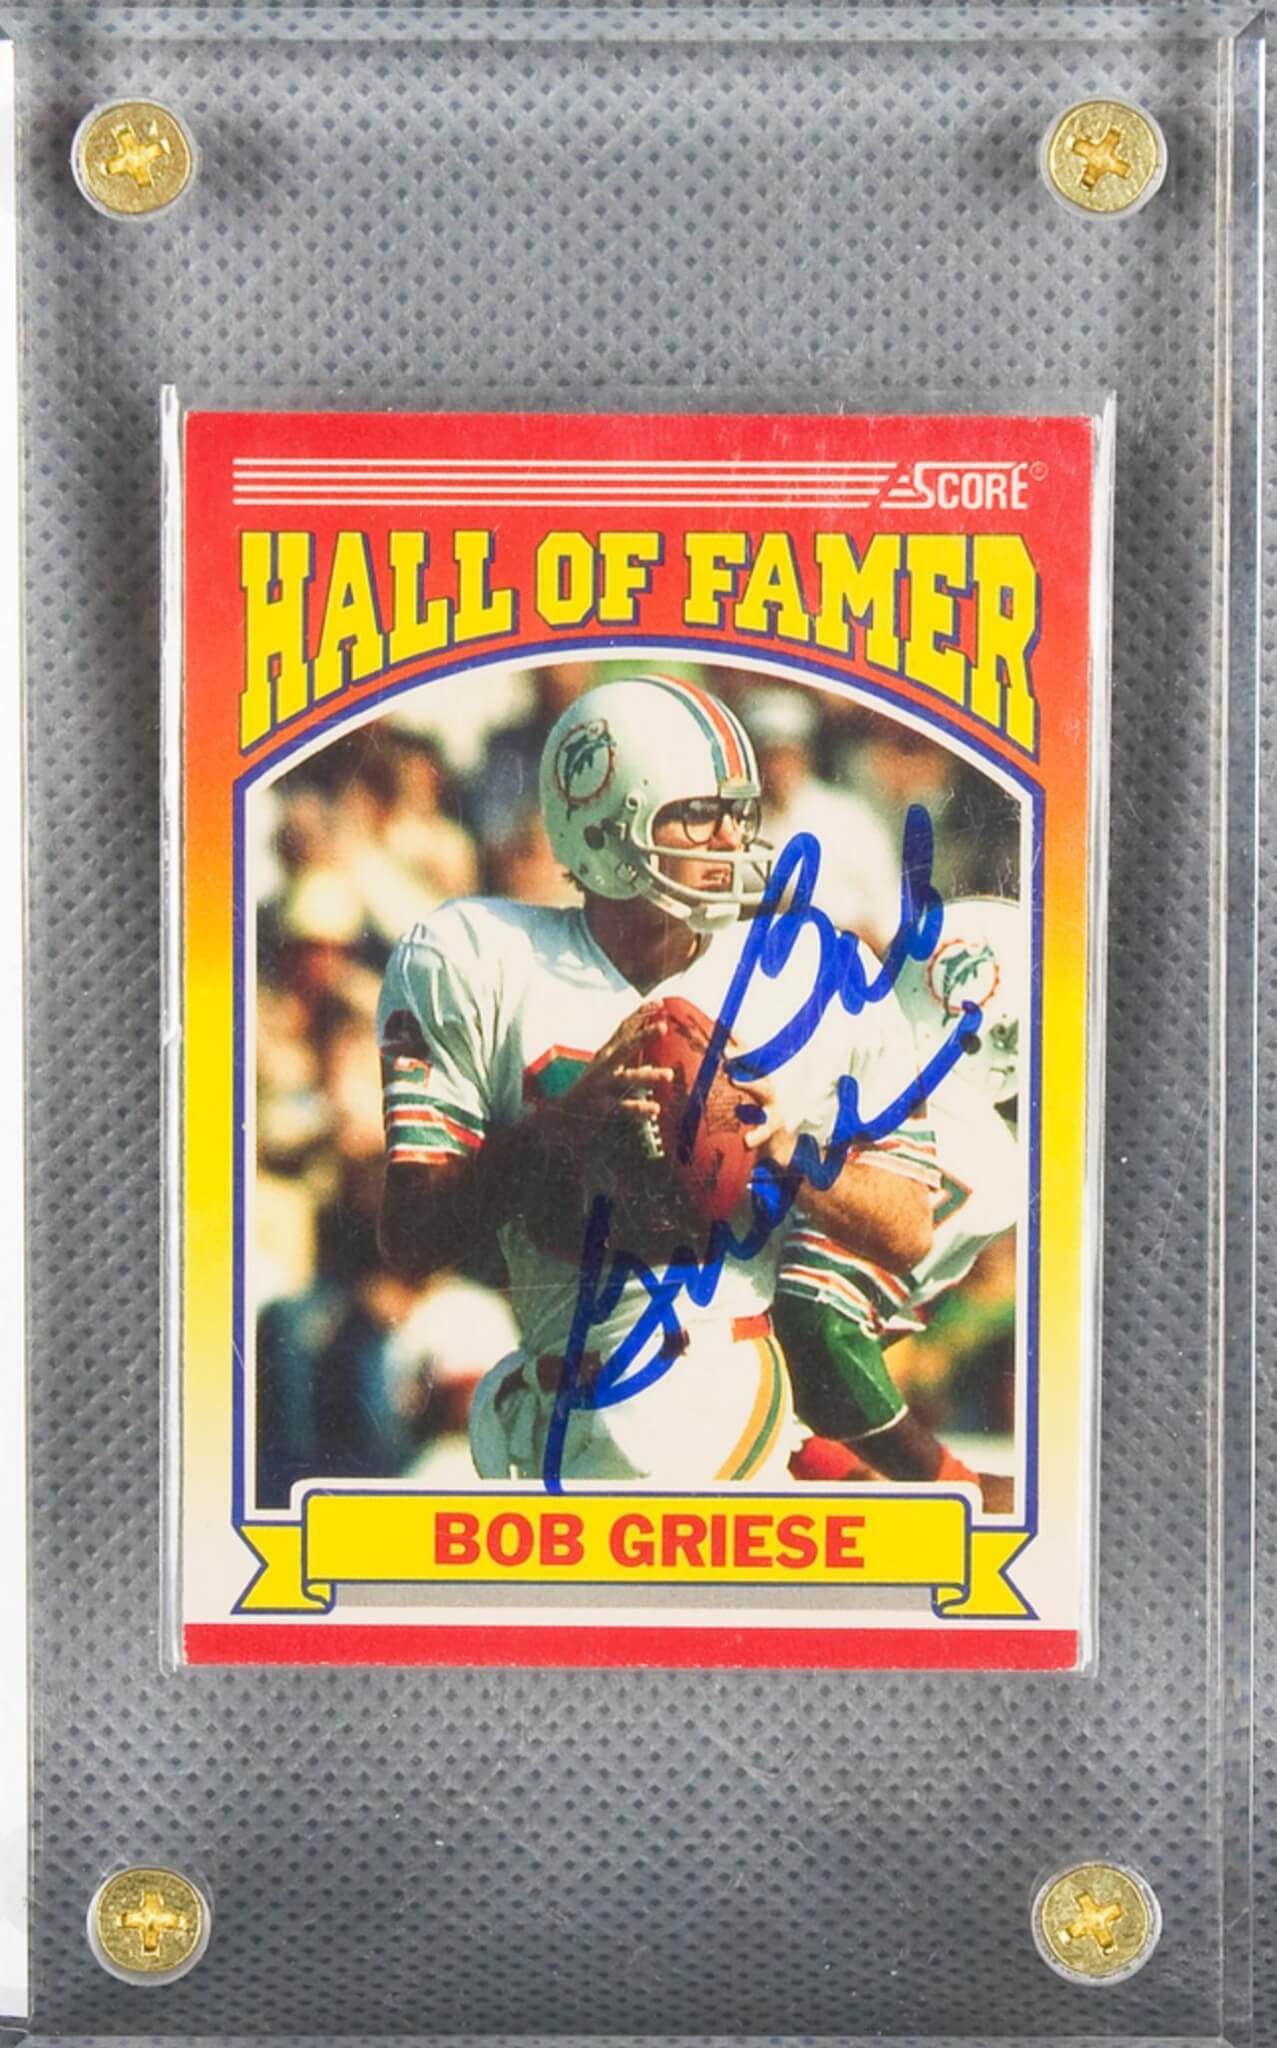 1990 HOF Card Signed by Dolphins Bob Griese